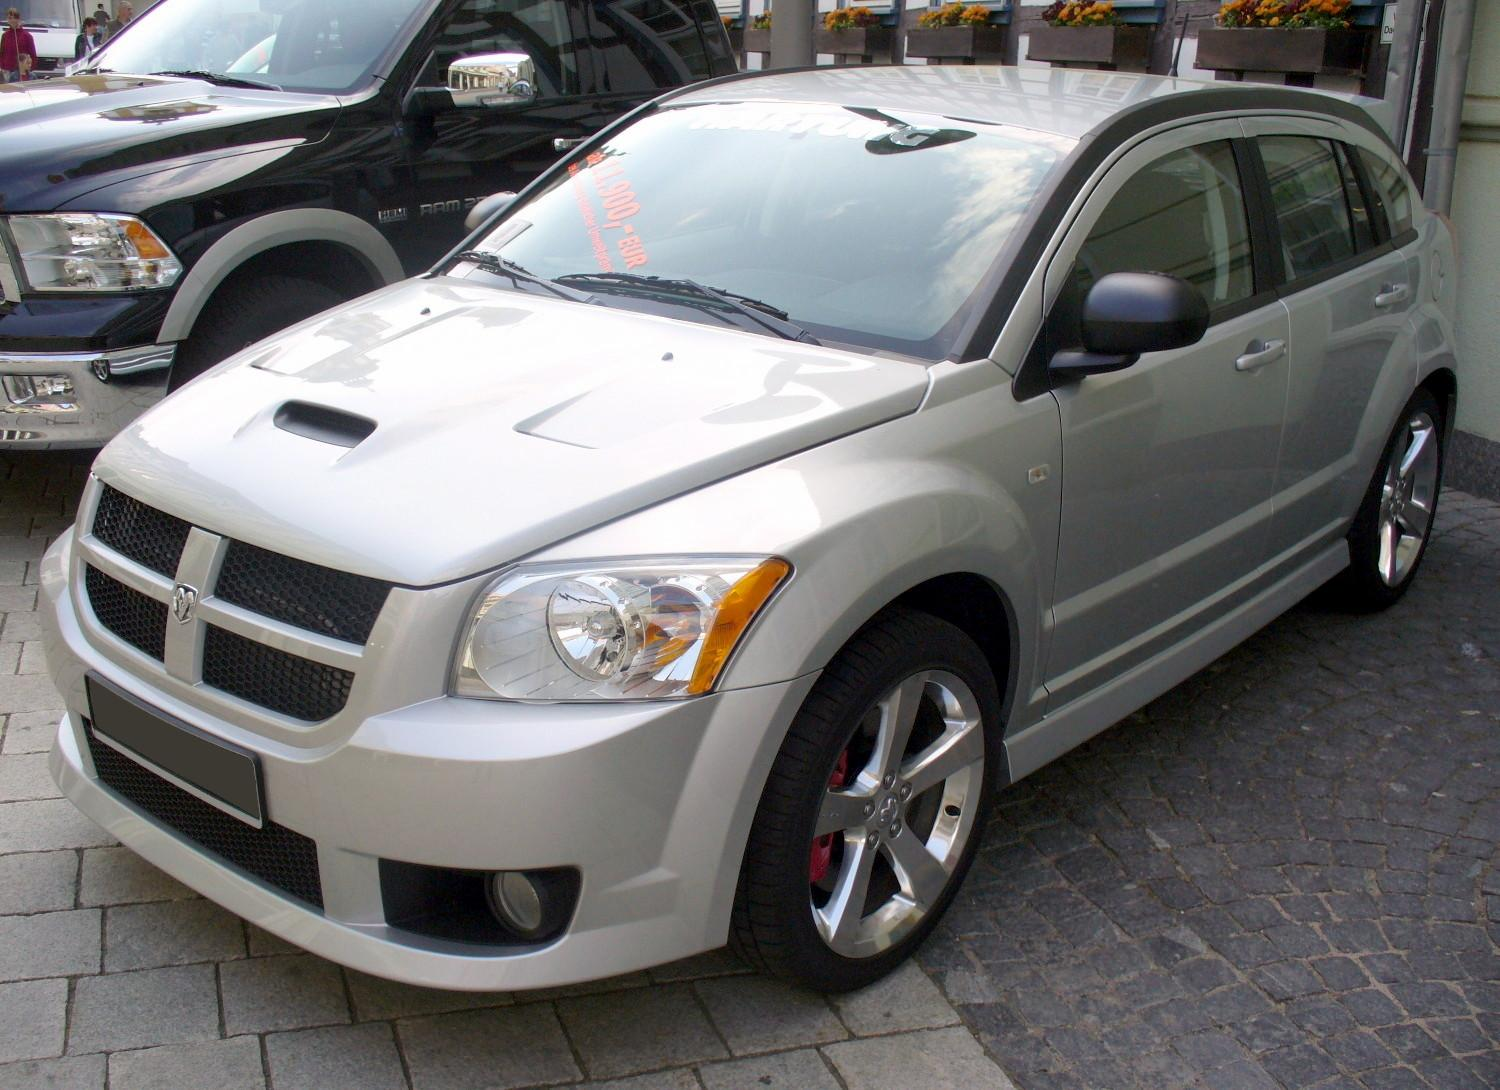 1000+ ideas about Dodge Caliber Srt4 on Pinterest | Dodge ...: https://www.pinterest.com/explore/dodge-caliber-srt4/